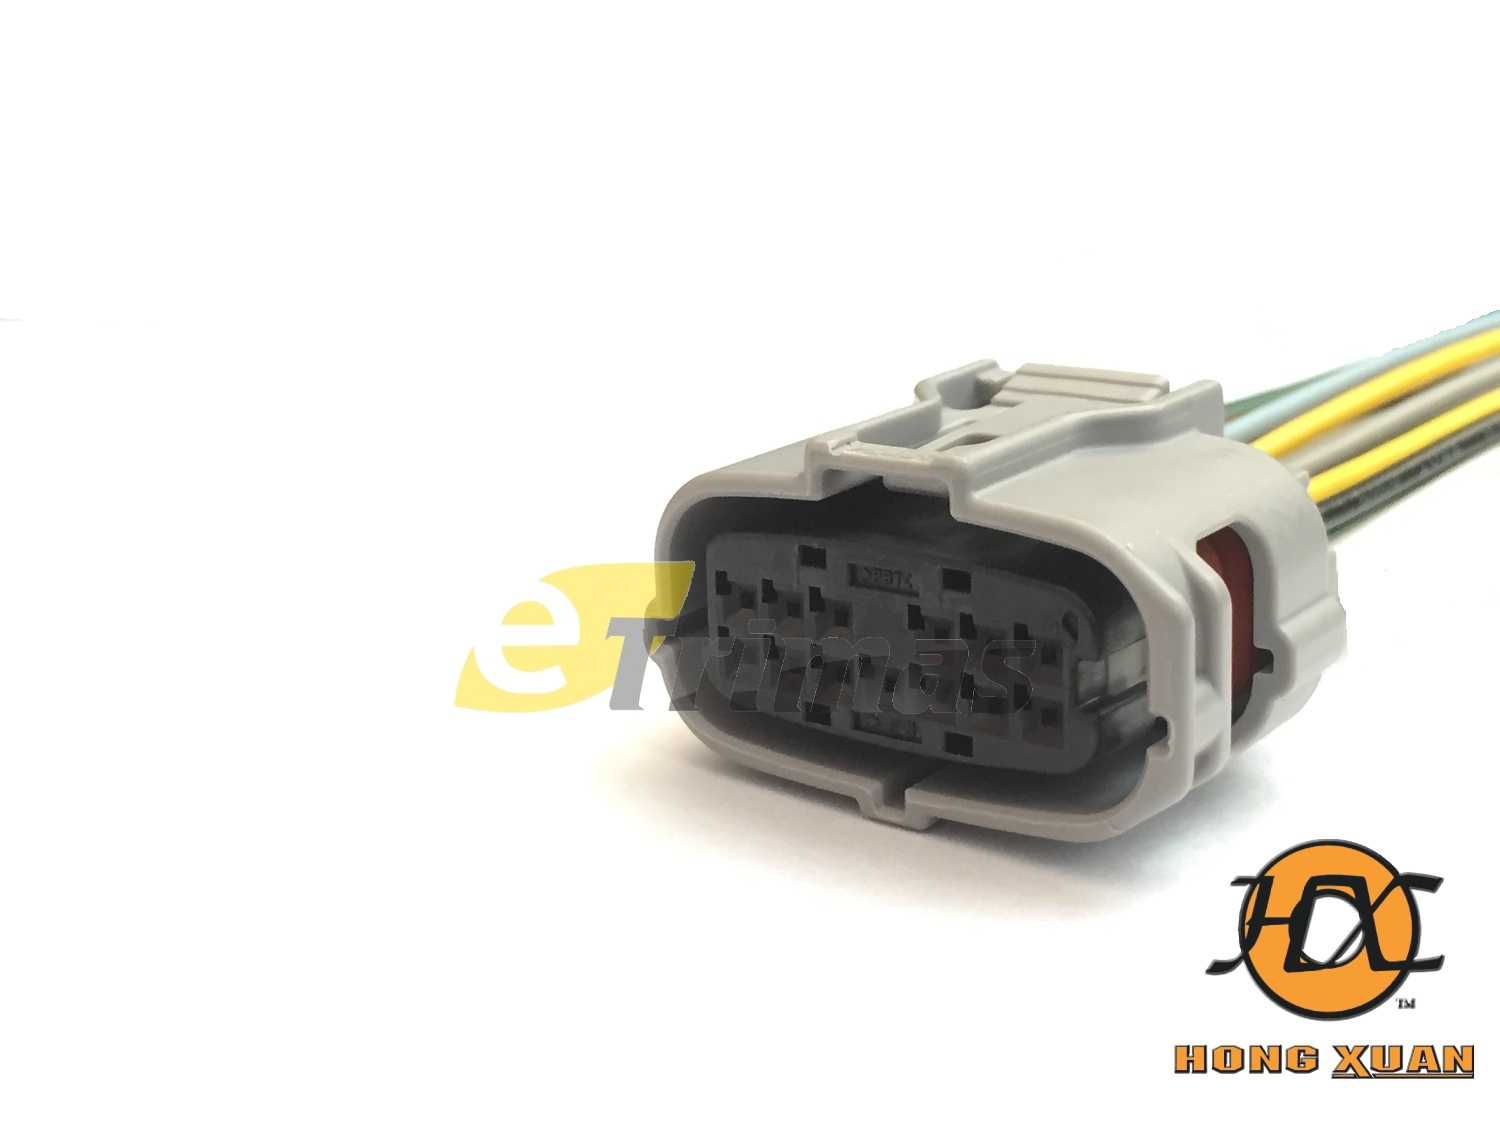 Lexus IS220 Toyota Power Steering Control Module Unit Socket Connector